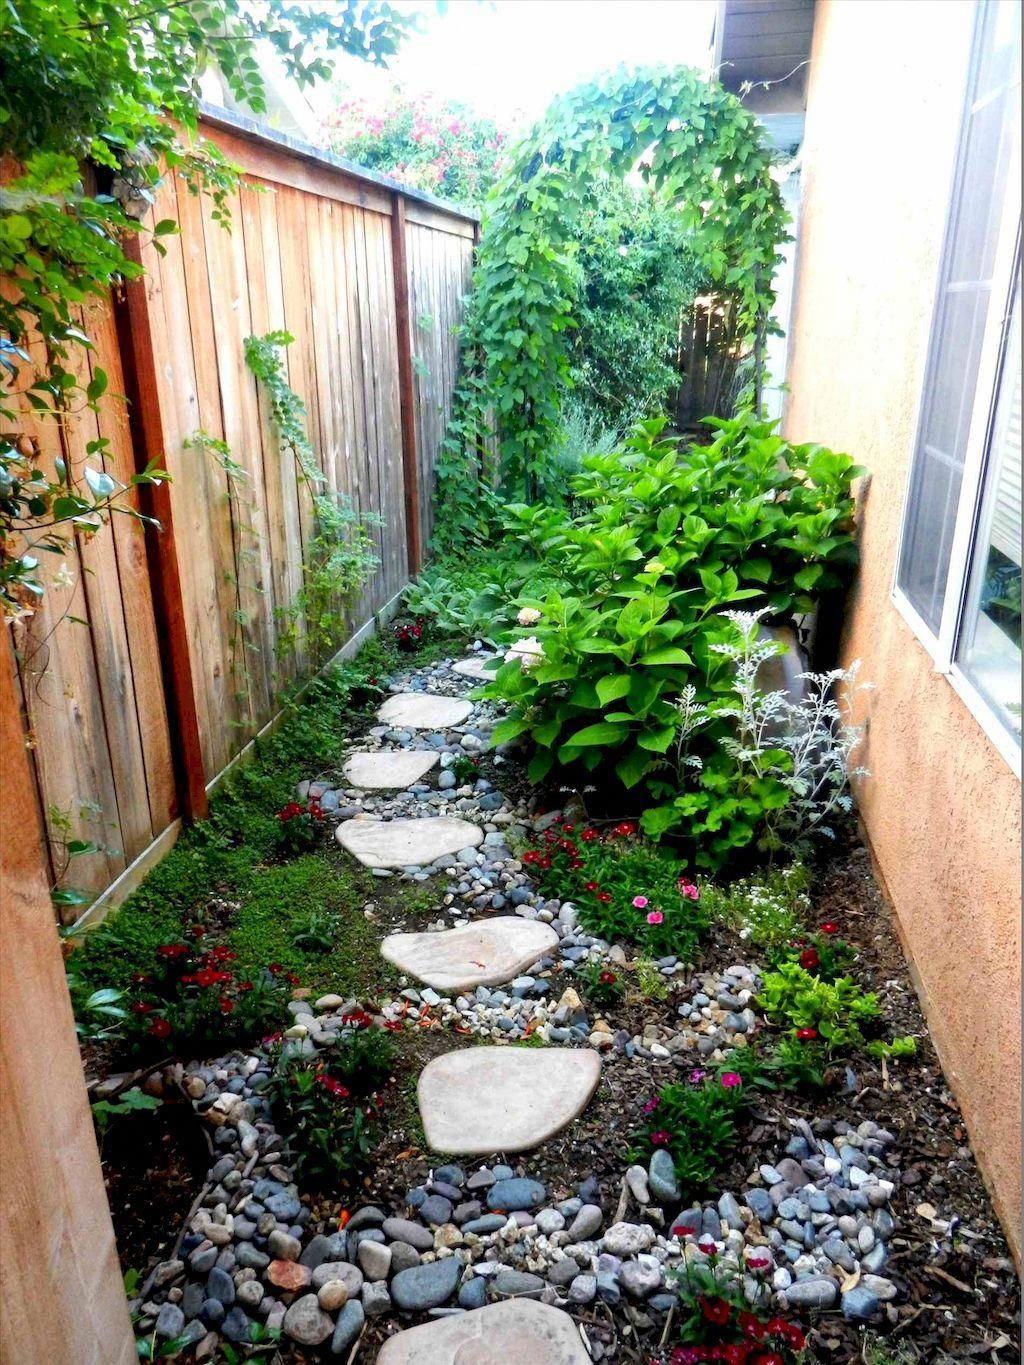 Ideas For Landscape Gardening Thebasicprinciplesoflandscapedesignandthings Small Backyard Landscaping Side Yard Landscaping Small Garden Design